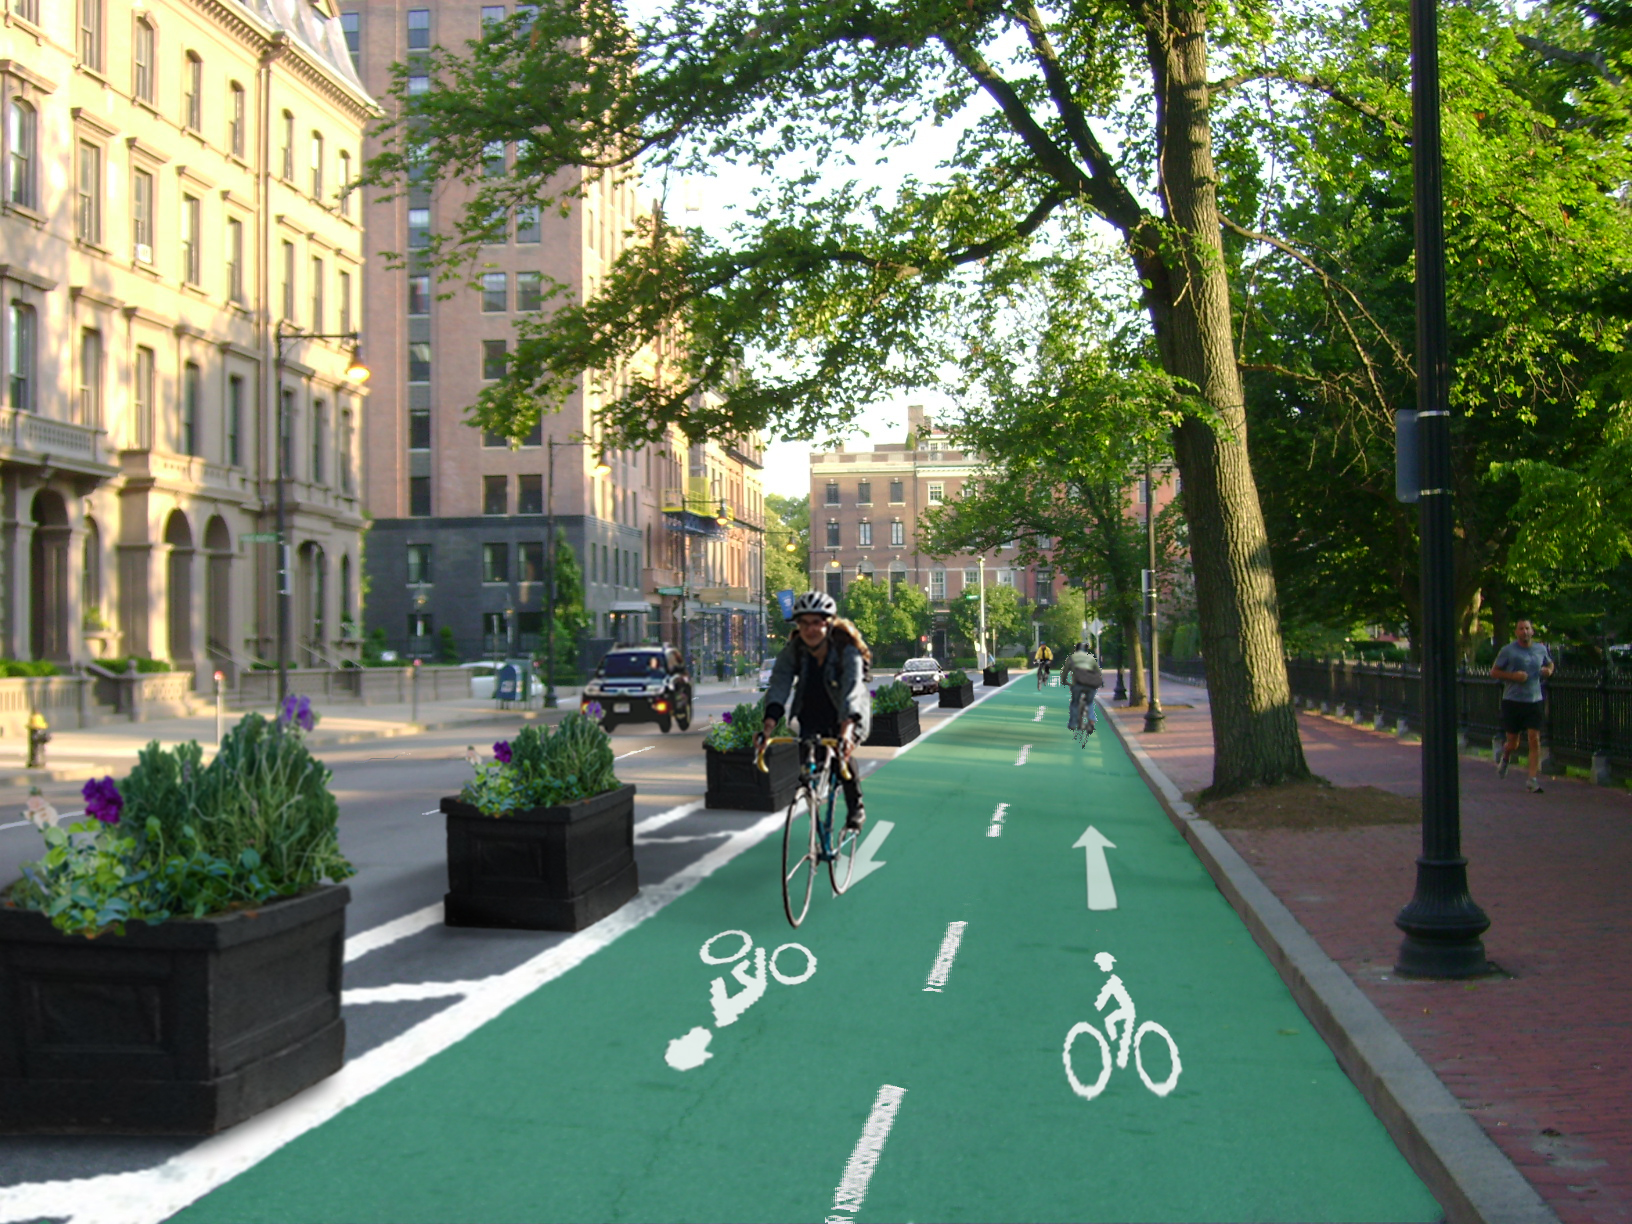 The City Plans Two Way Cycle Tracks Around Public Garden